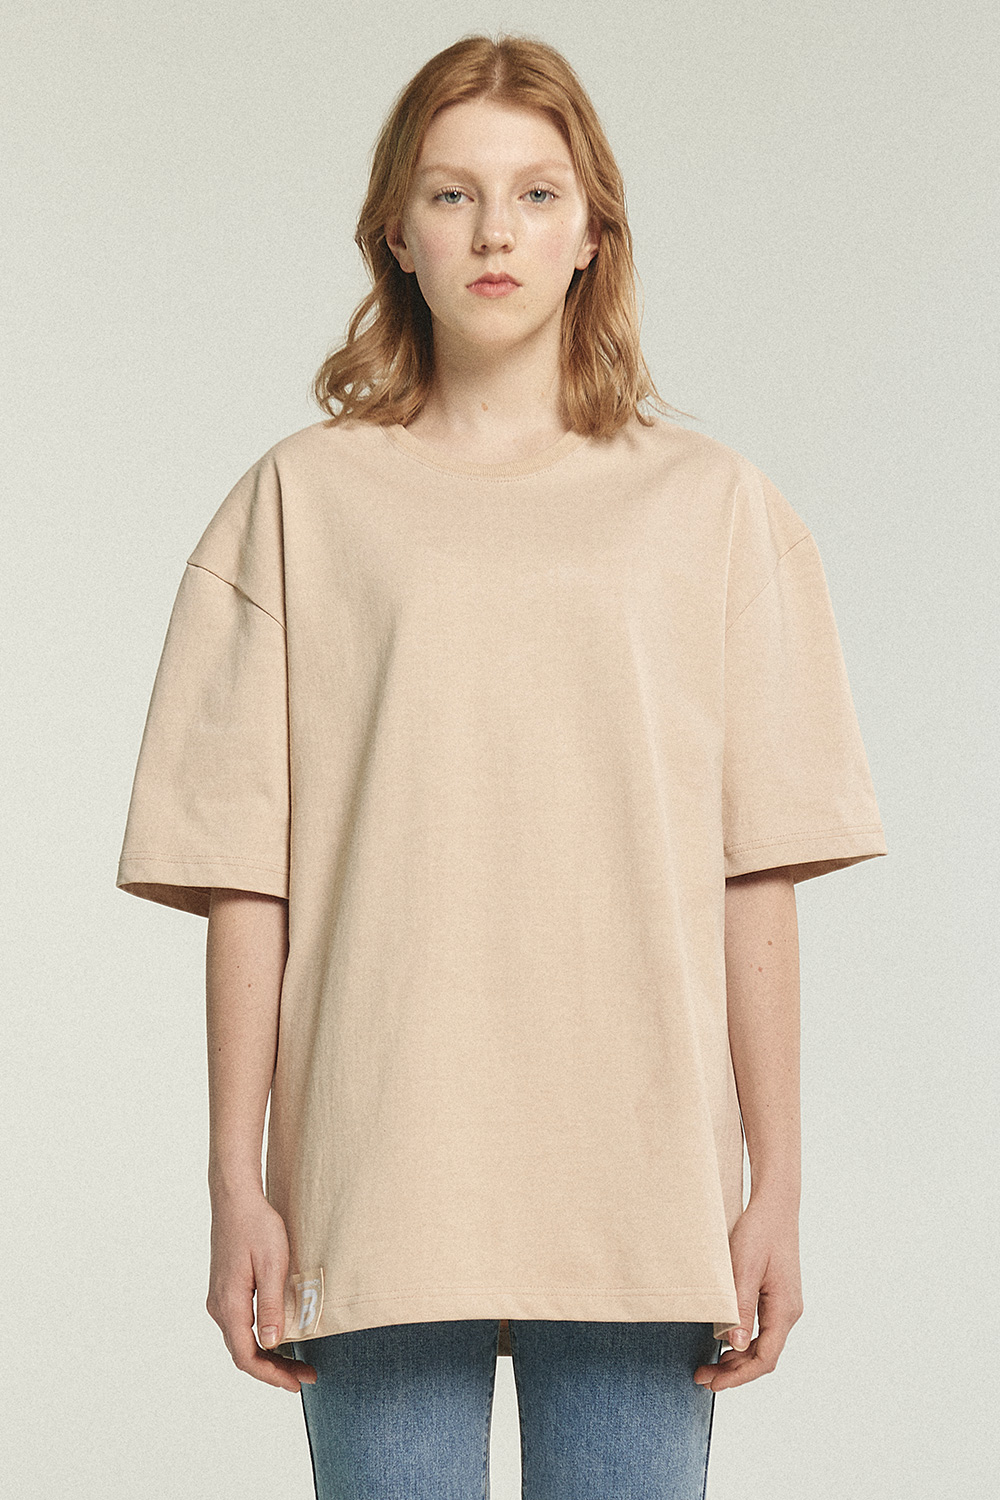 Original Label Over T(unisex)_Beige BS0STS205BE00F